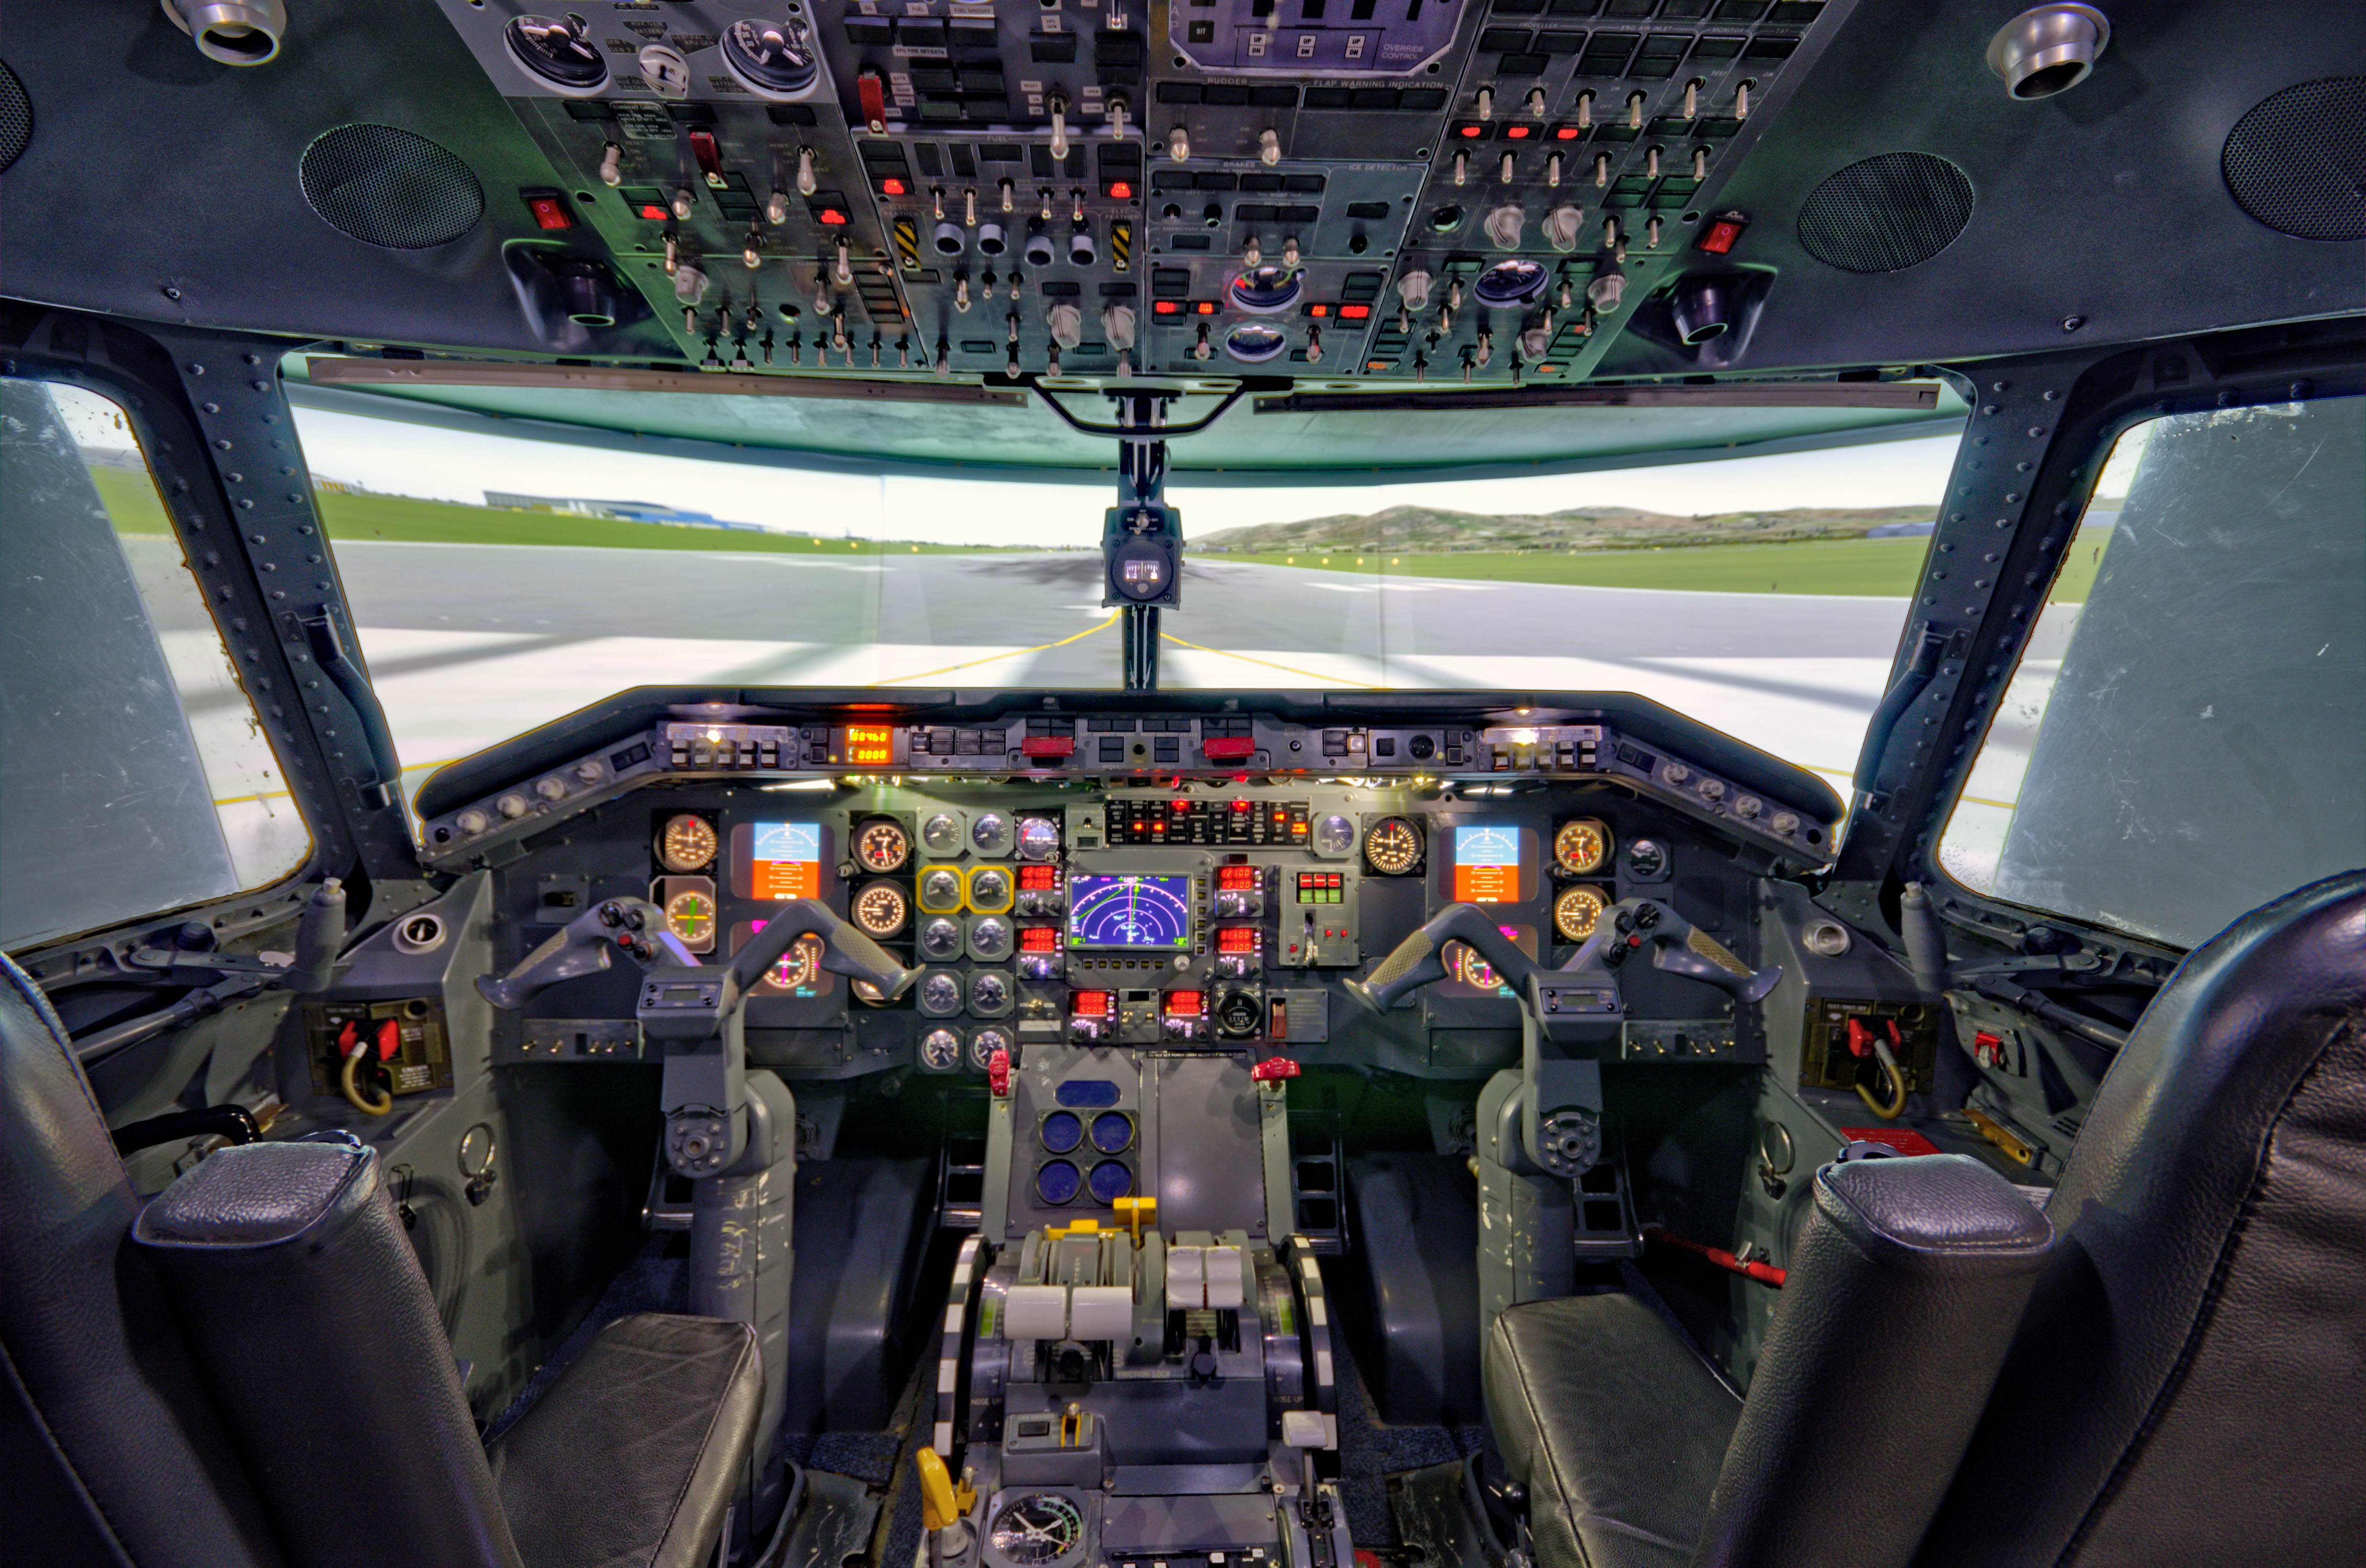 Flight simulator software and programming challenges resolved - EE